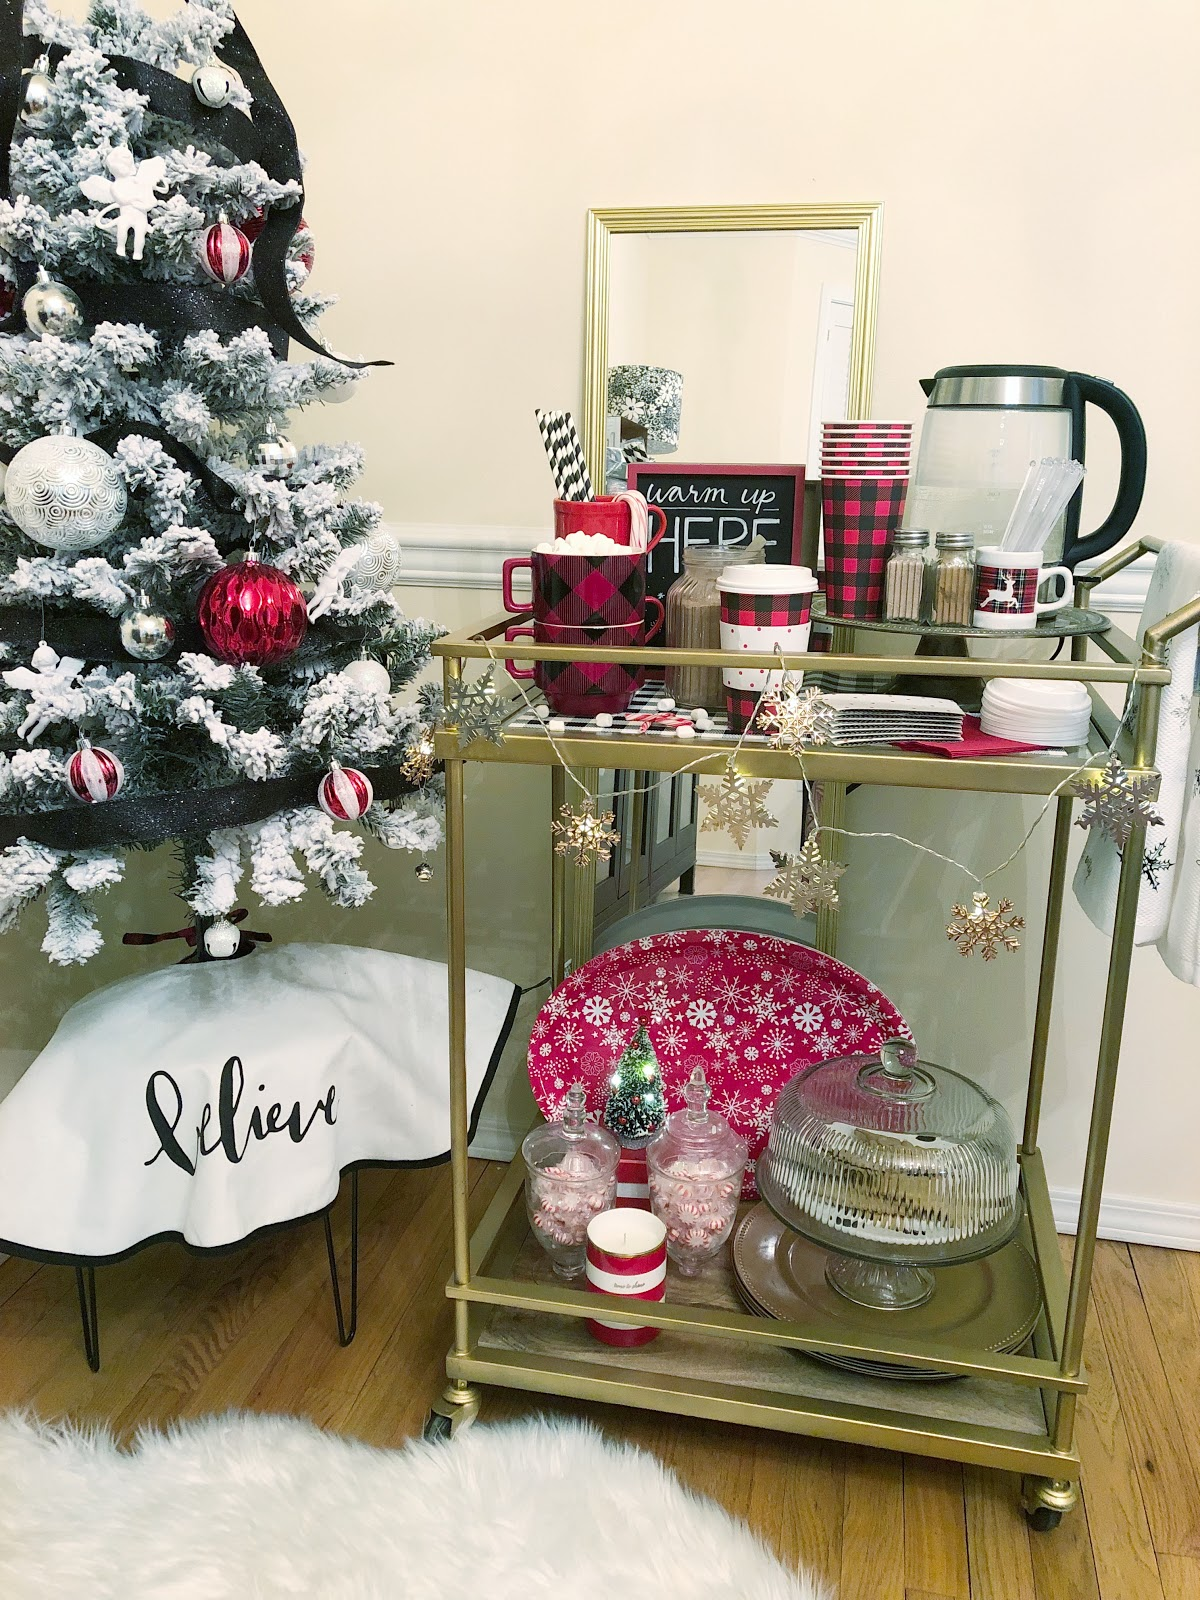 how to set up a hot cocoa bar on a bar cart